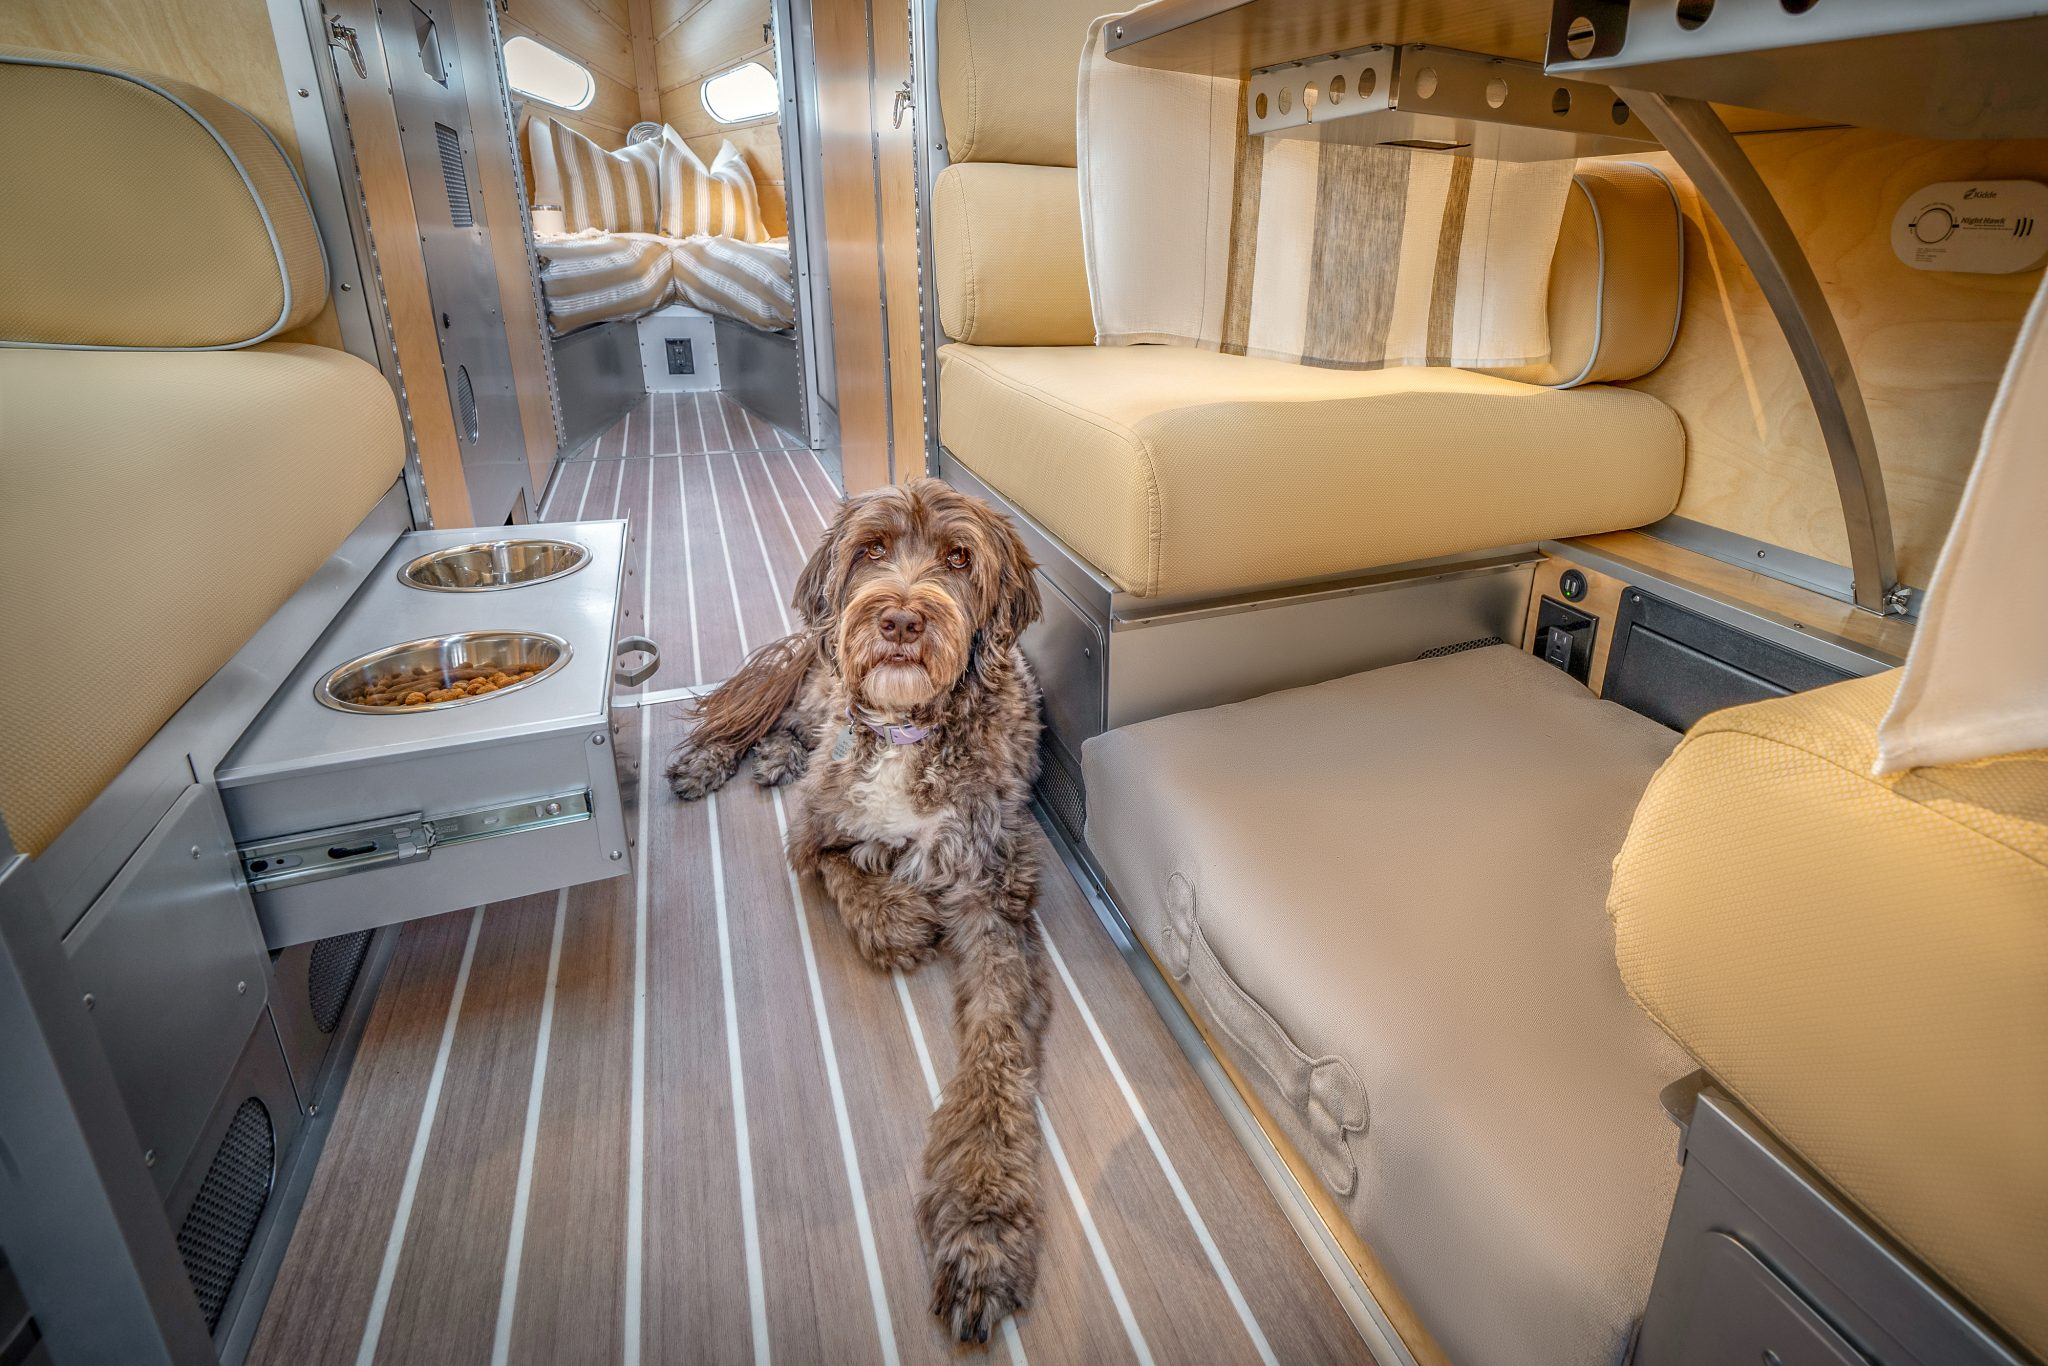 RVing With Dogs is More Fun in a Bowlus